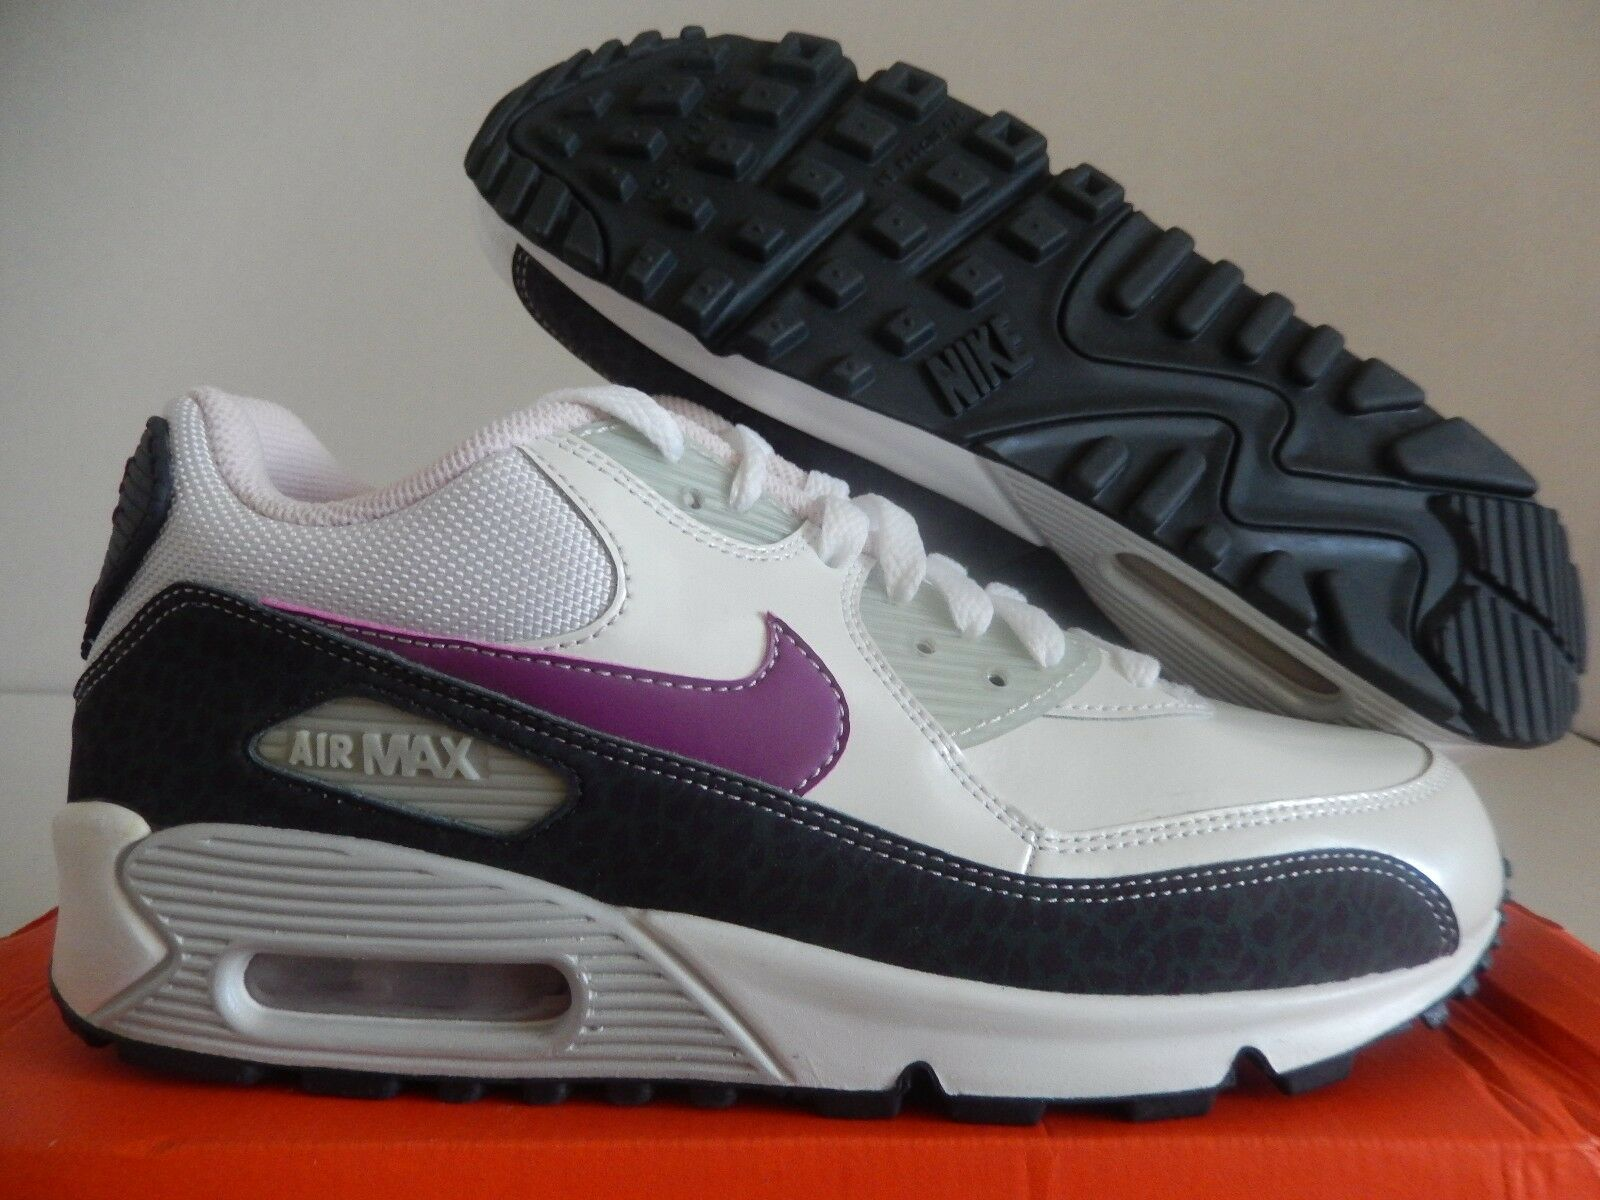 NIKE AIR MAX 90 CL (GS) (GS) (GS) SAIL-BROWN-PINK SZ 6Y-WOMENS SZ 7.5 [312153-152] 4e0fda